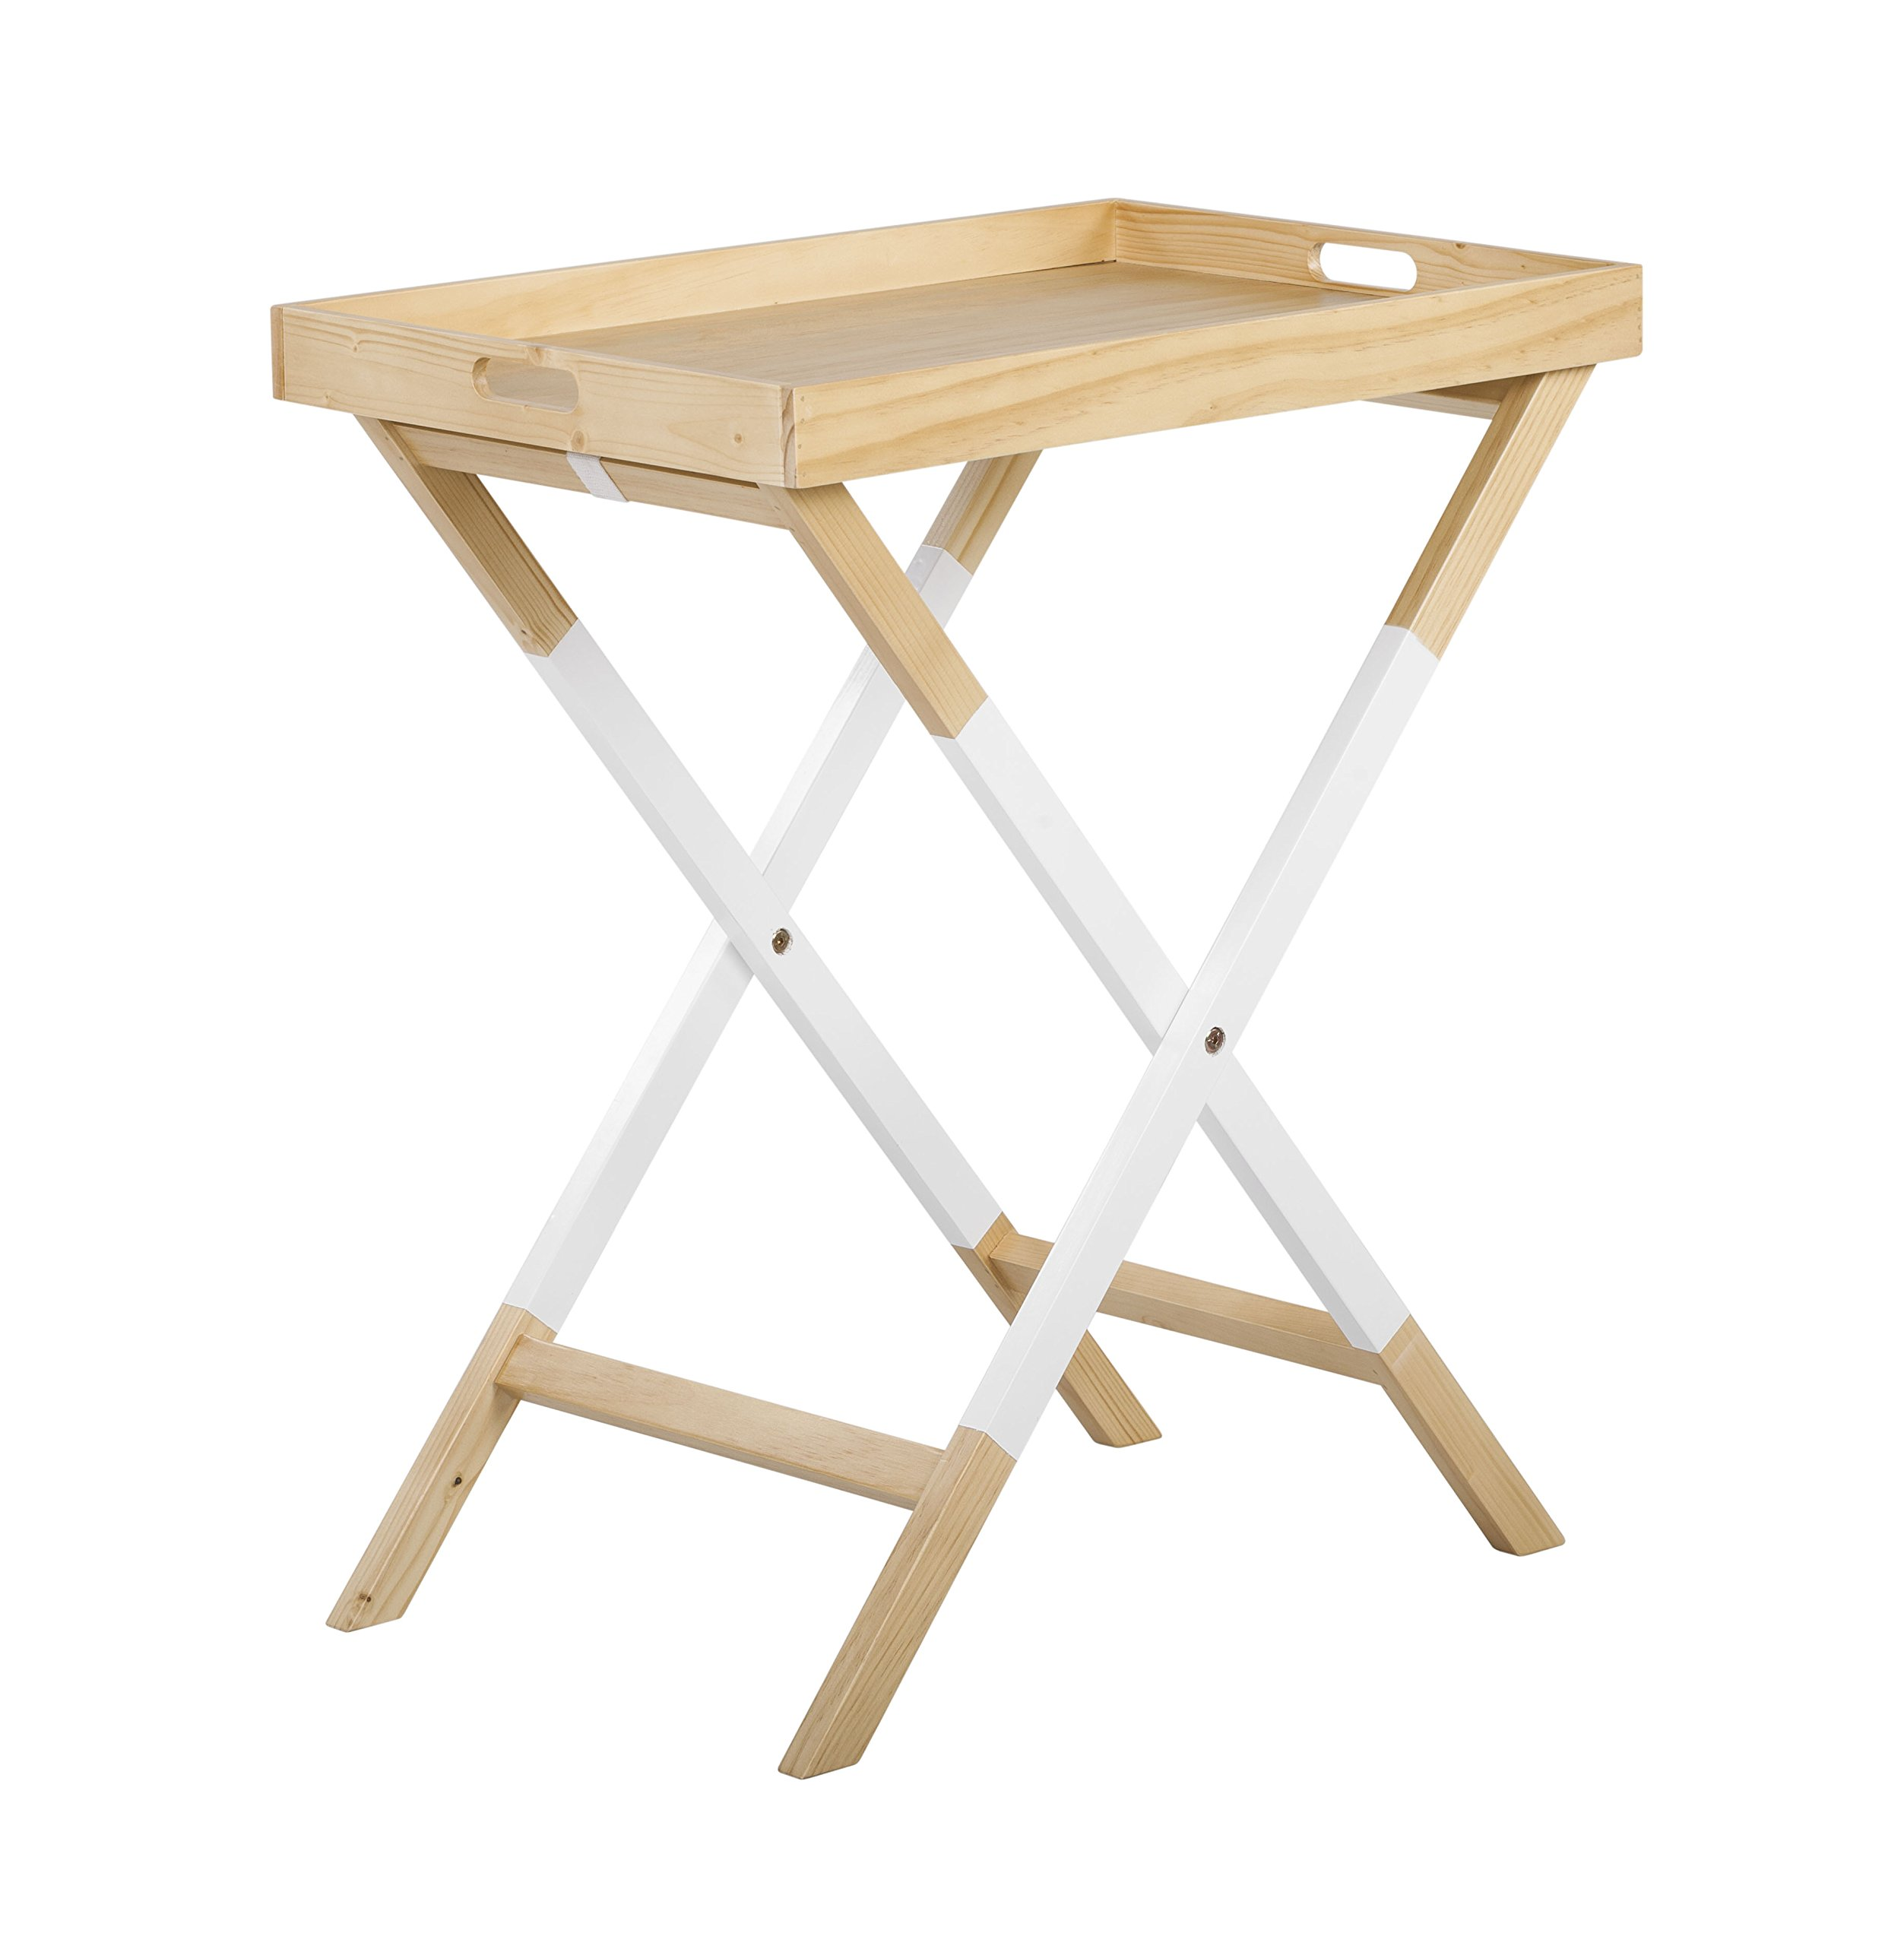 Universal Experts FUST10026A Remus Folding Tray Table, Oak/White by Universal Experts (Image #4)